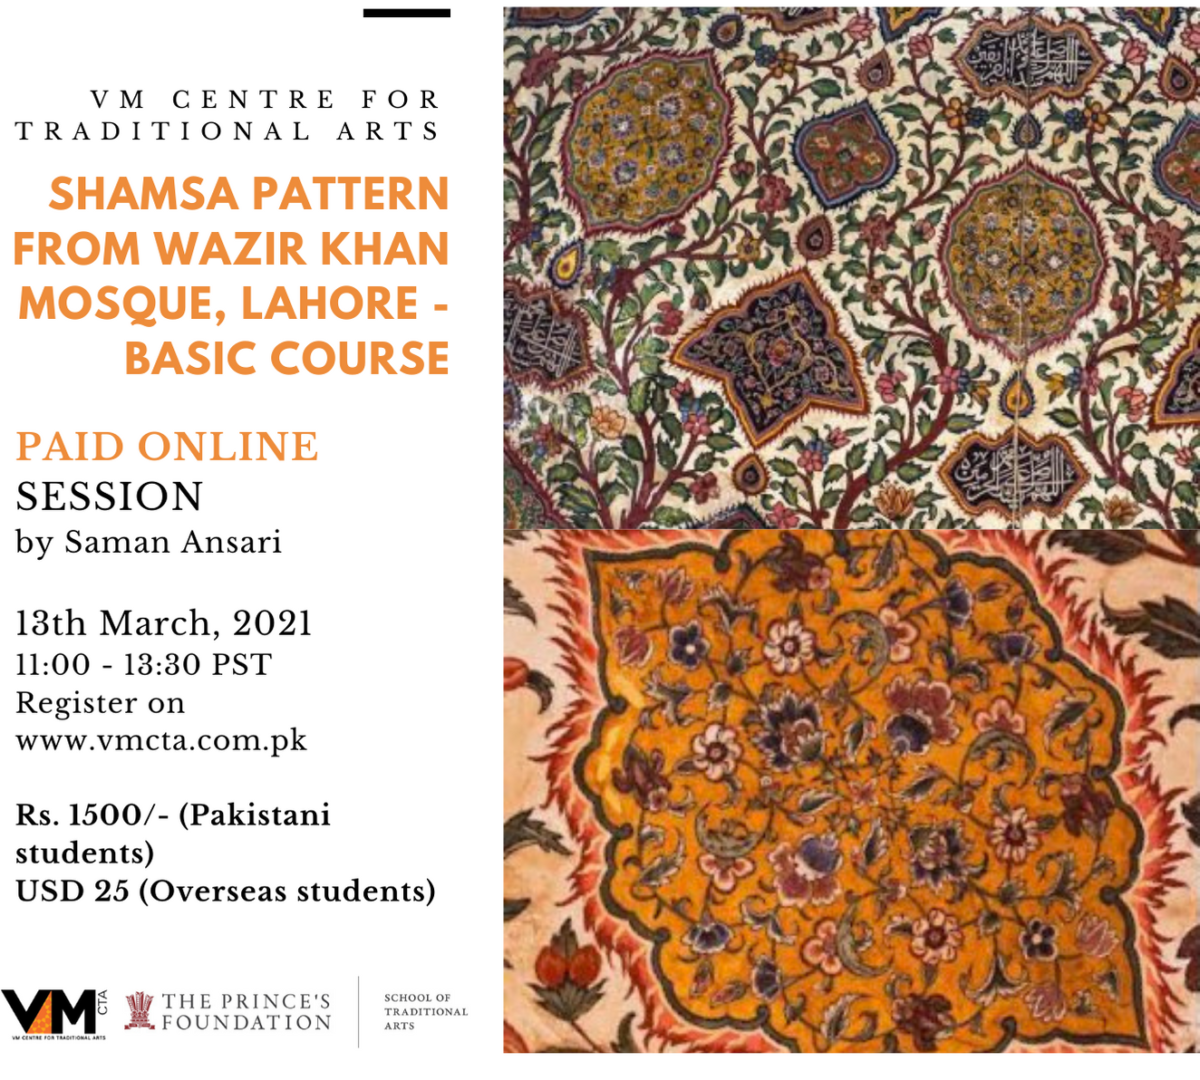 Shamsa Pattern from Wazir Khan Mosque, Lahore 13 Mar 2021